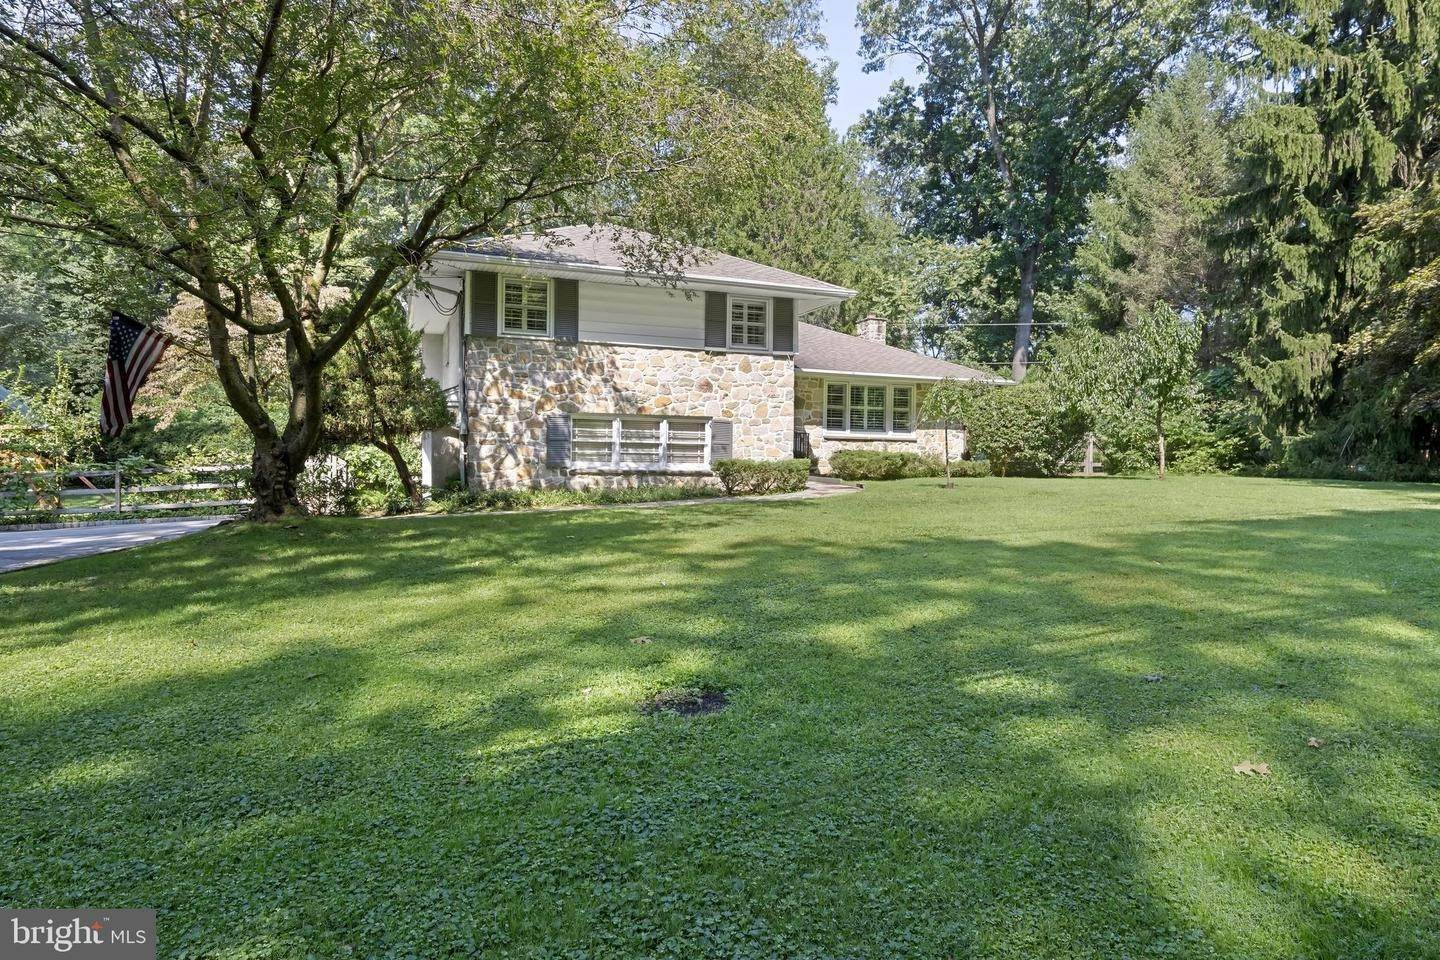 Detached House for Sale at 583 WEADLEY Road Radnor, Pennsylvania 19087 United States